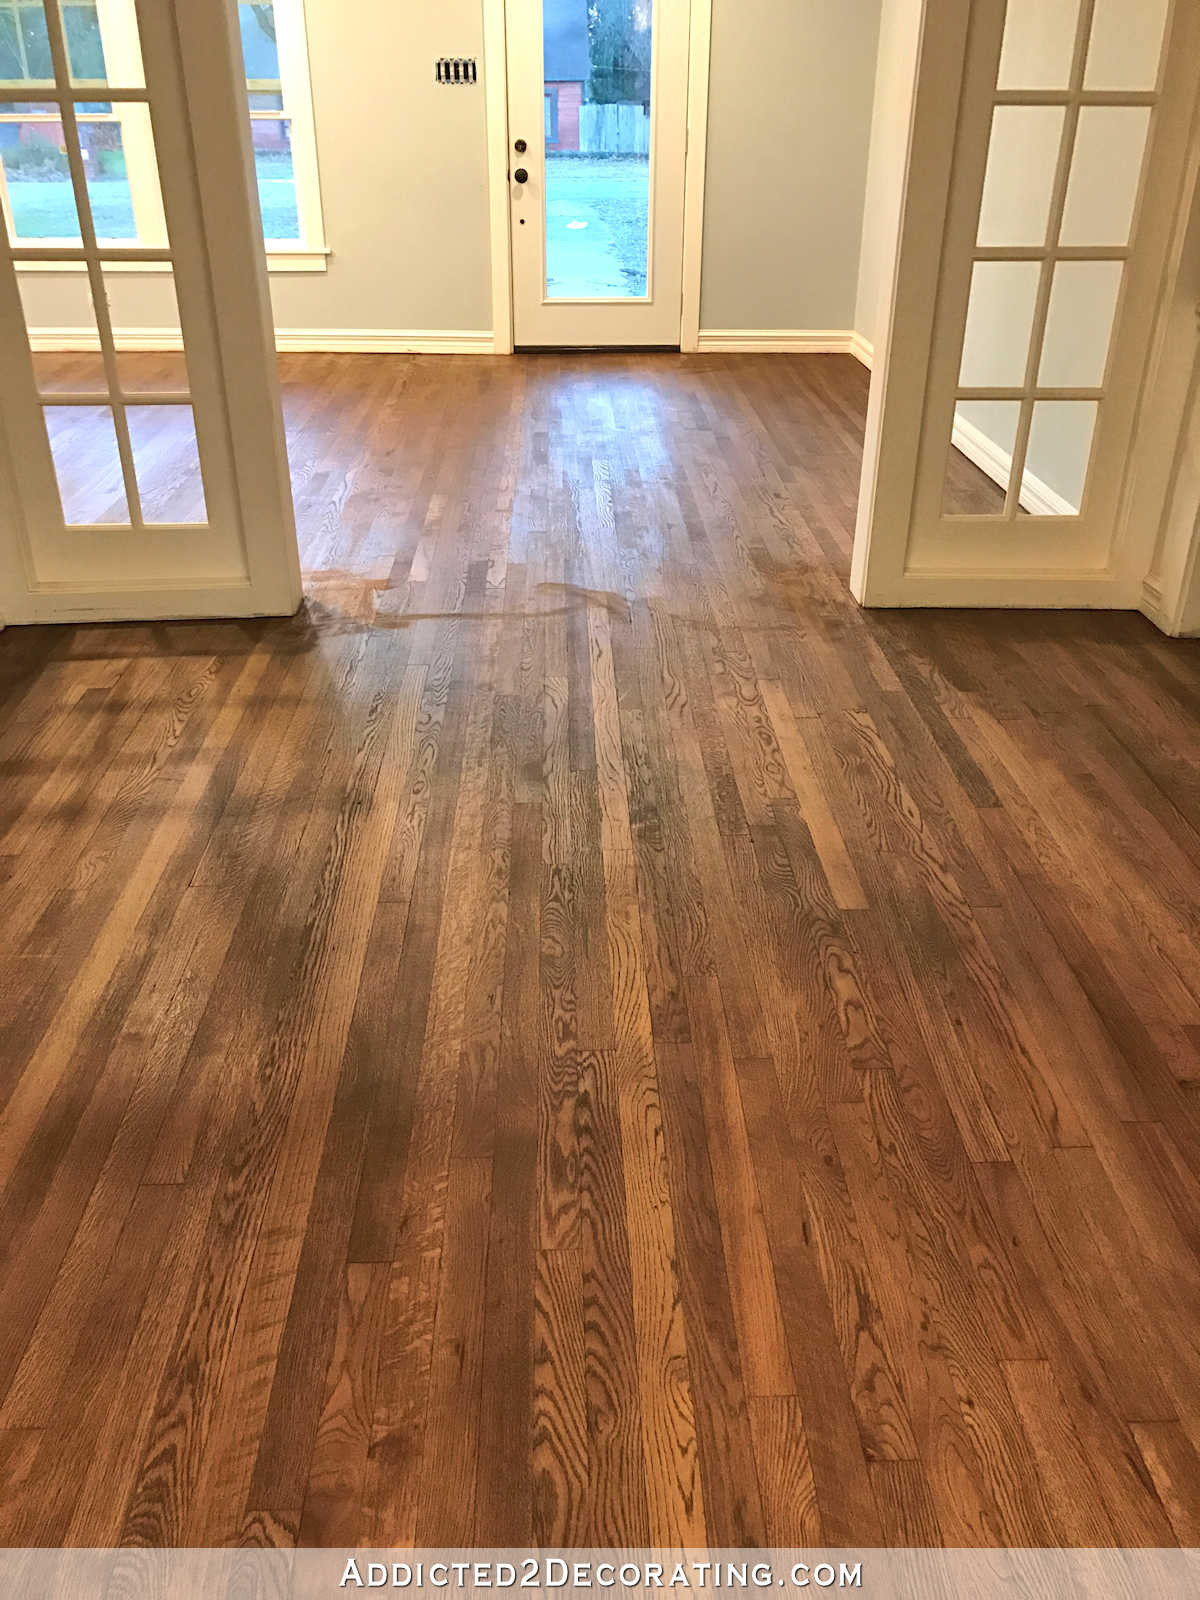 mahogany hardwood flooring home depot of adventures in staining my red oak hardwood floors products process intended for staining red oak hardwood floors 9 stain on entryway and music room floors